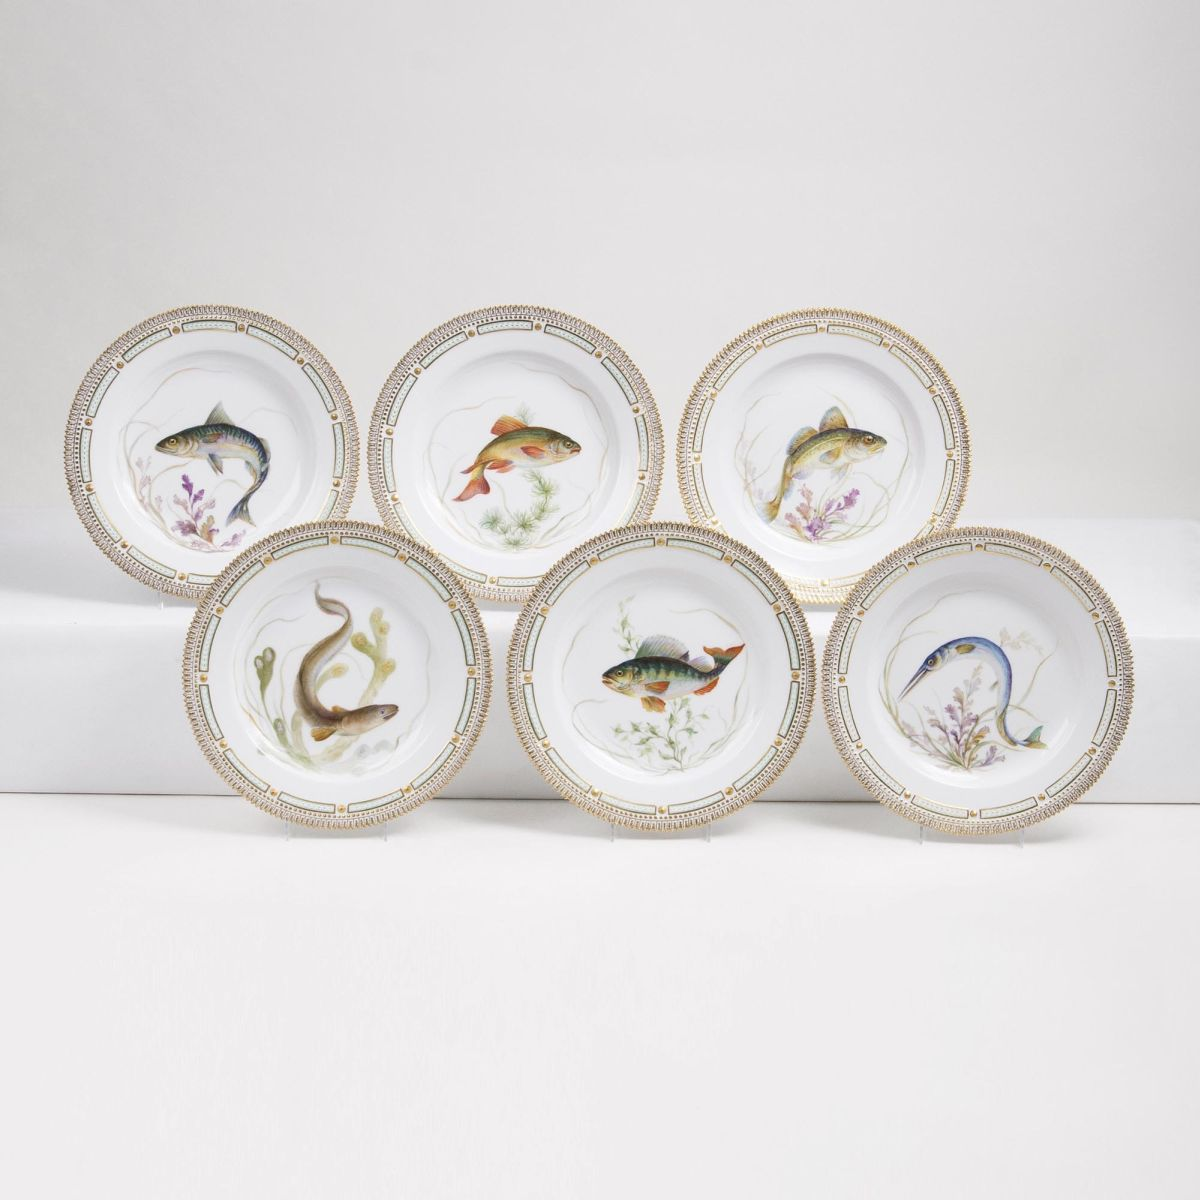 A Set of 6 Flora Danica Dinner Plates with Fish Specimens